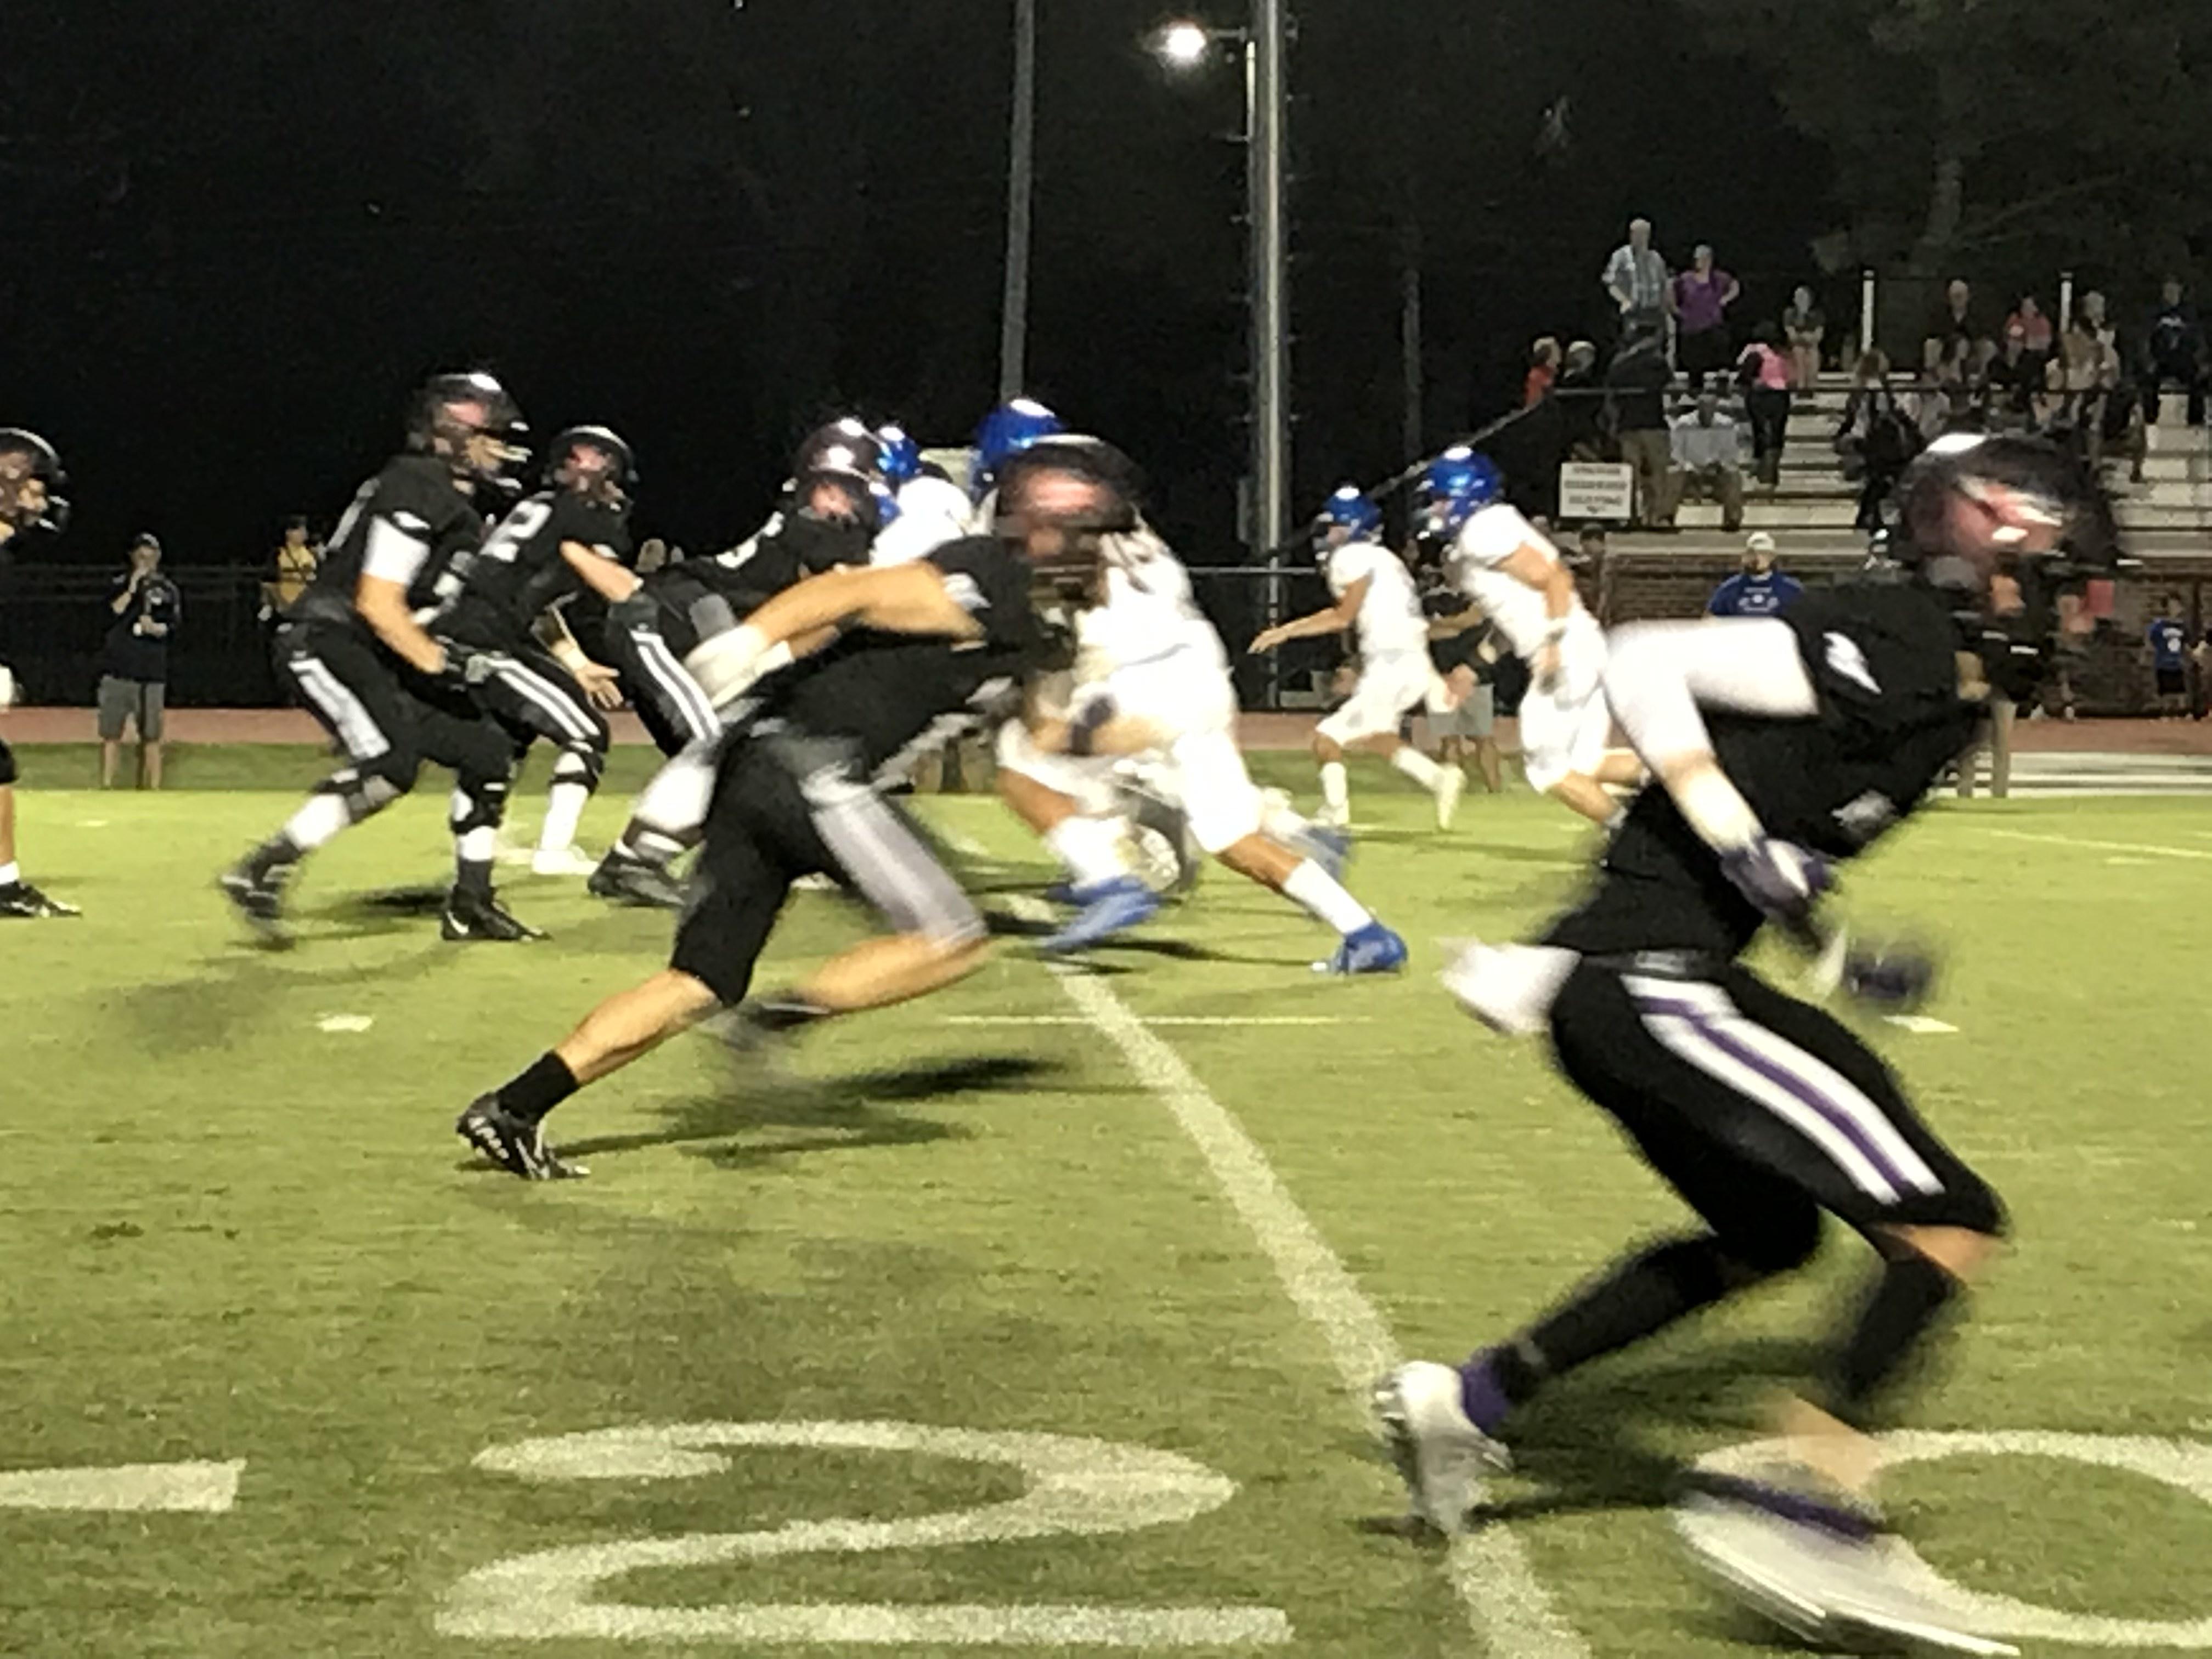 Lipscomb Academy gets big win over rival Goodpasture